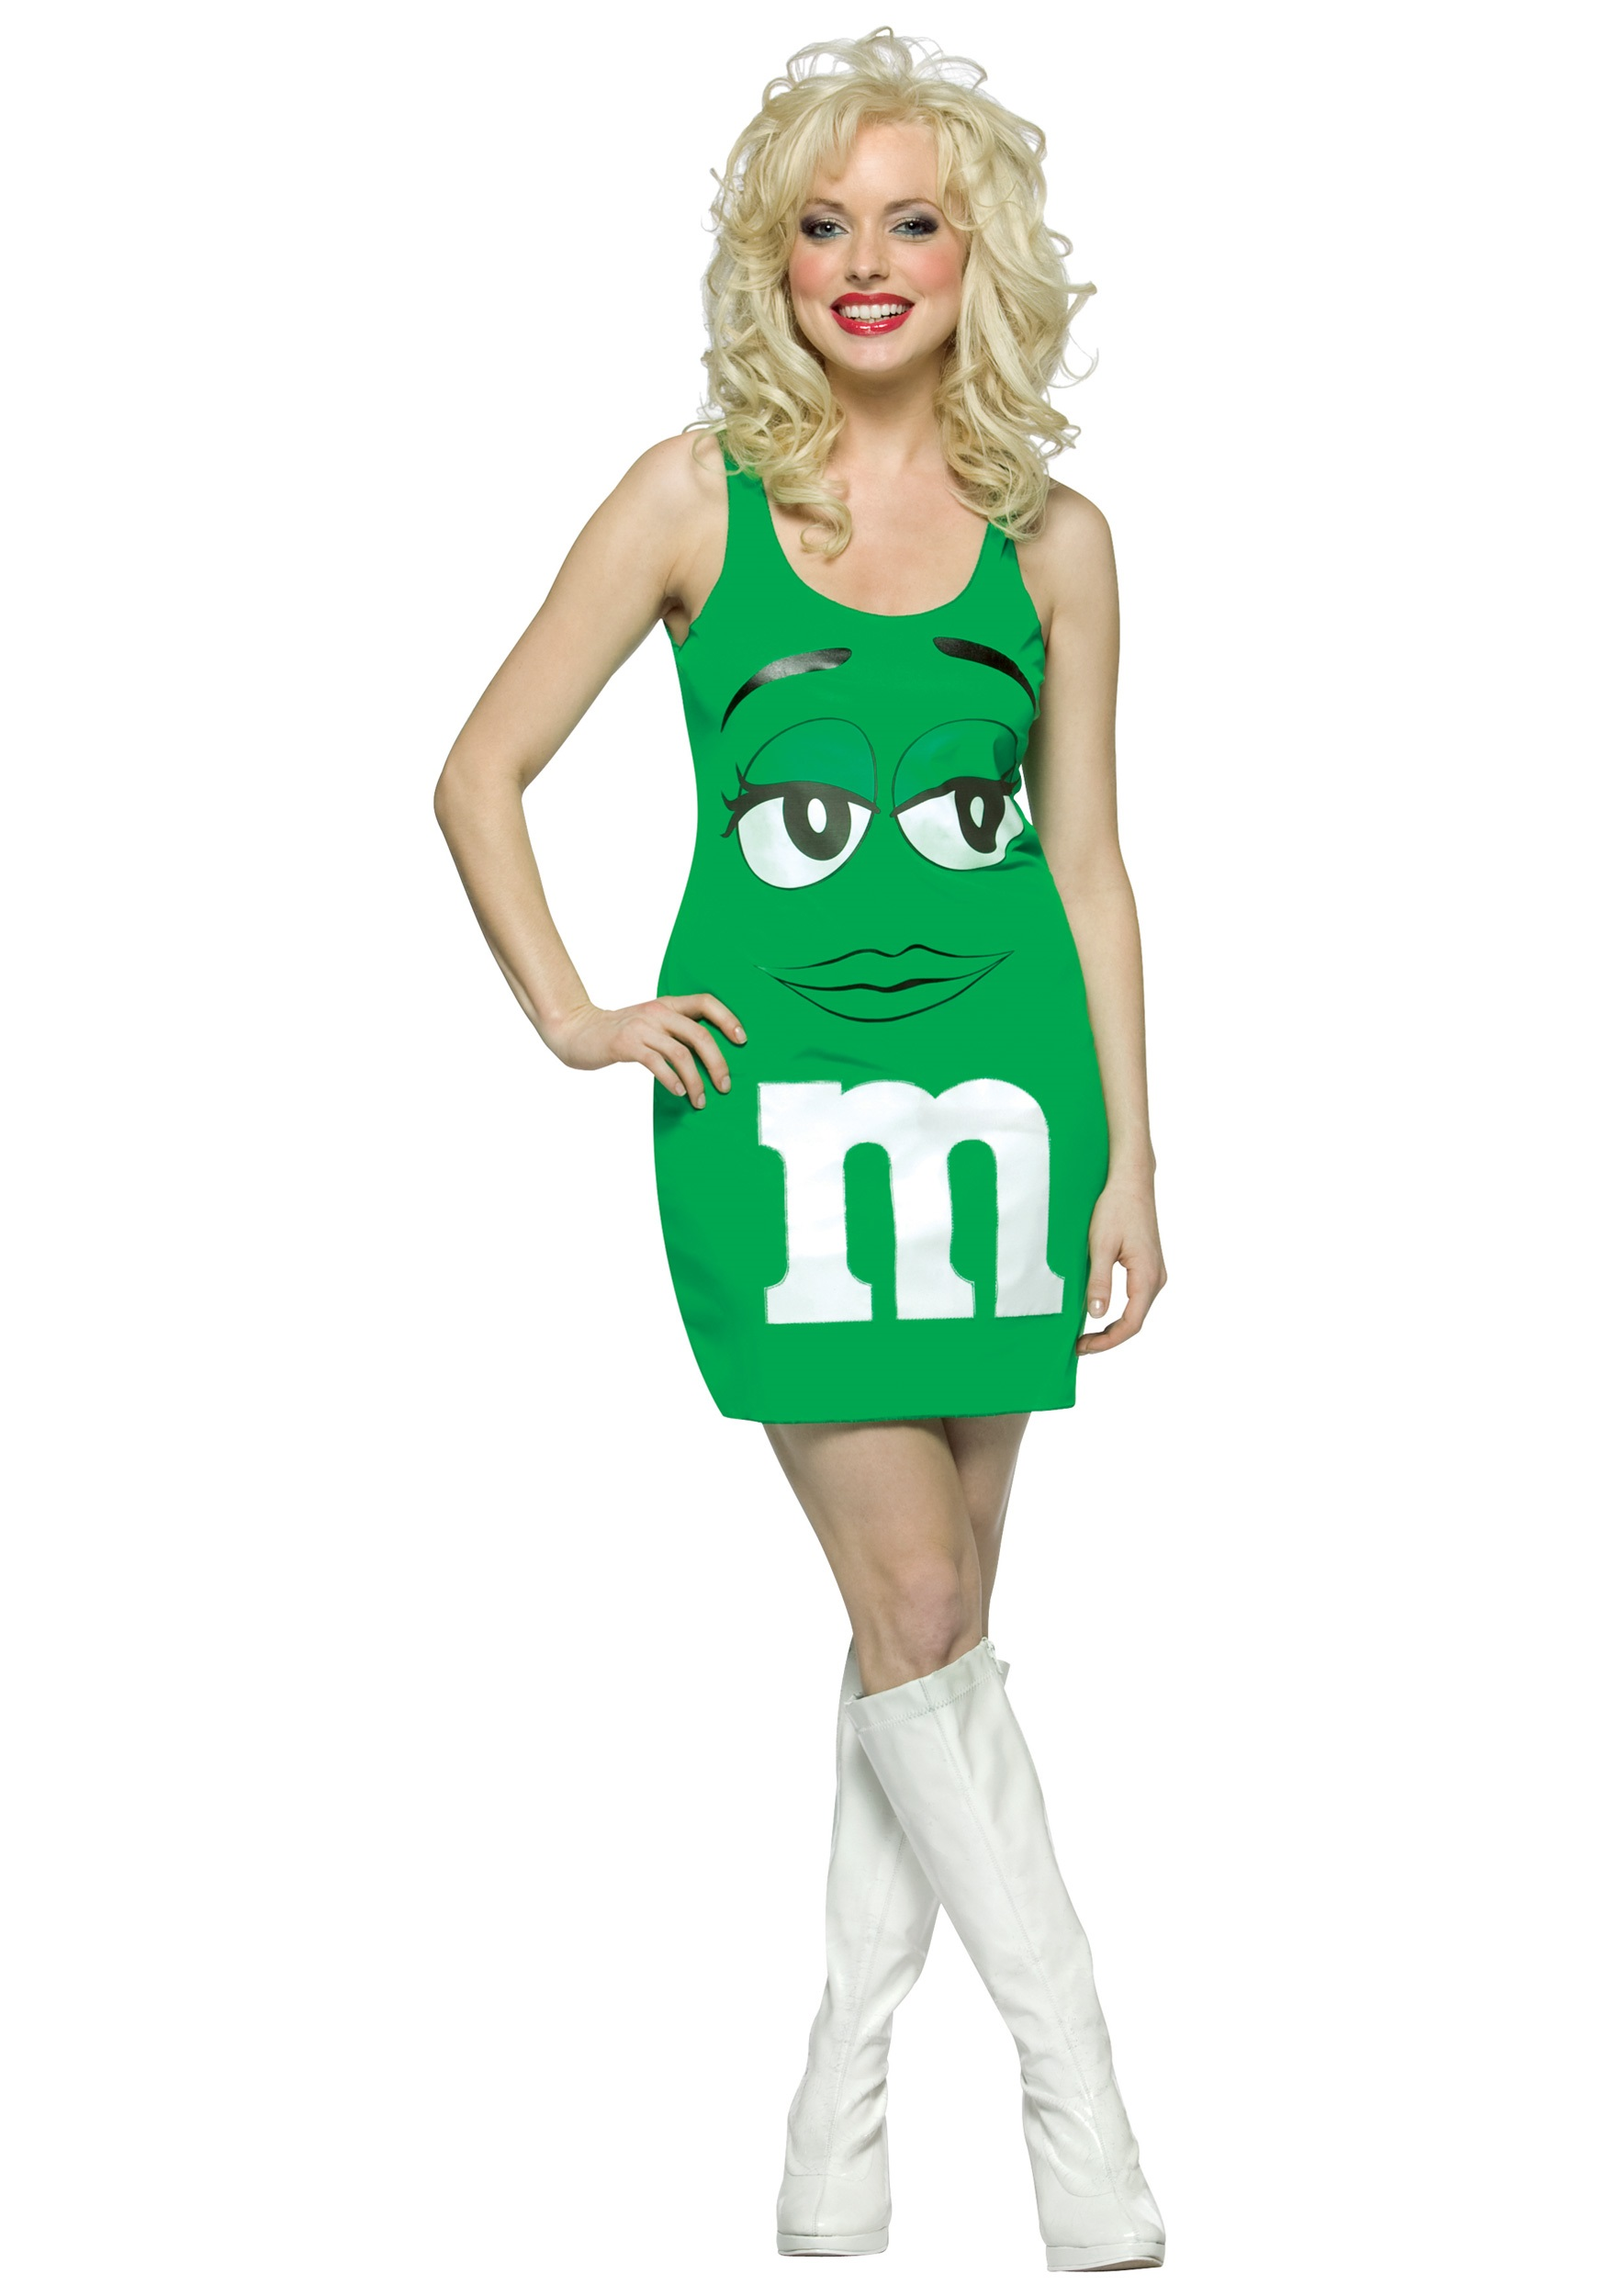 Find great deals on eBay for M&M Costume in Unisex Theater and Reenactment Costumes. Shop with confidence.